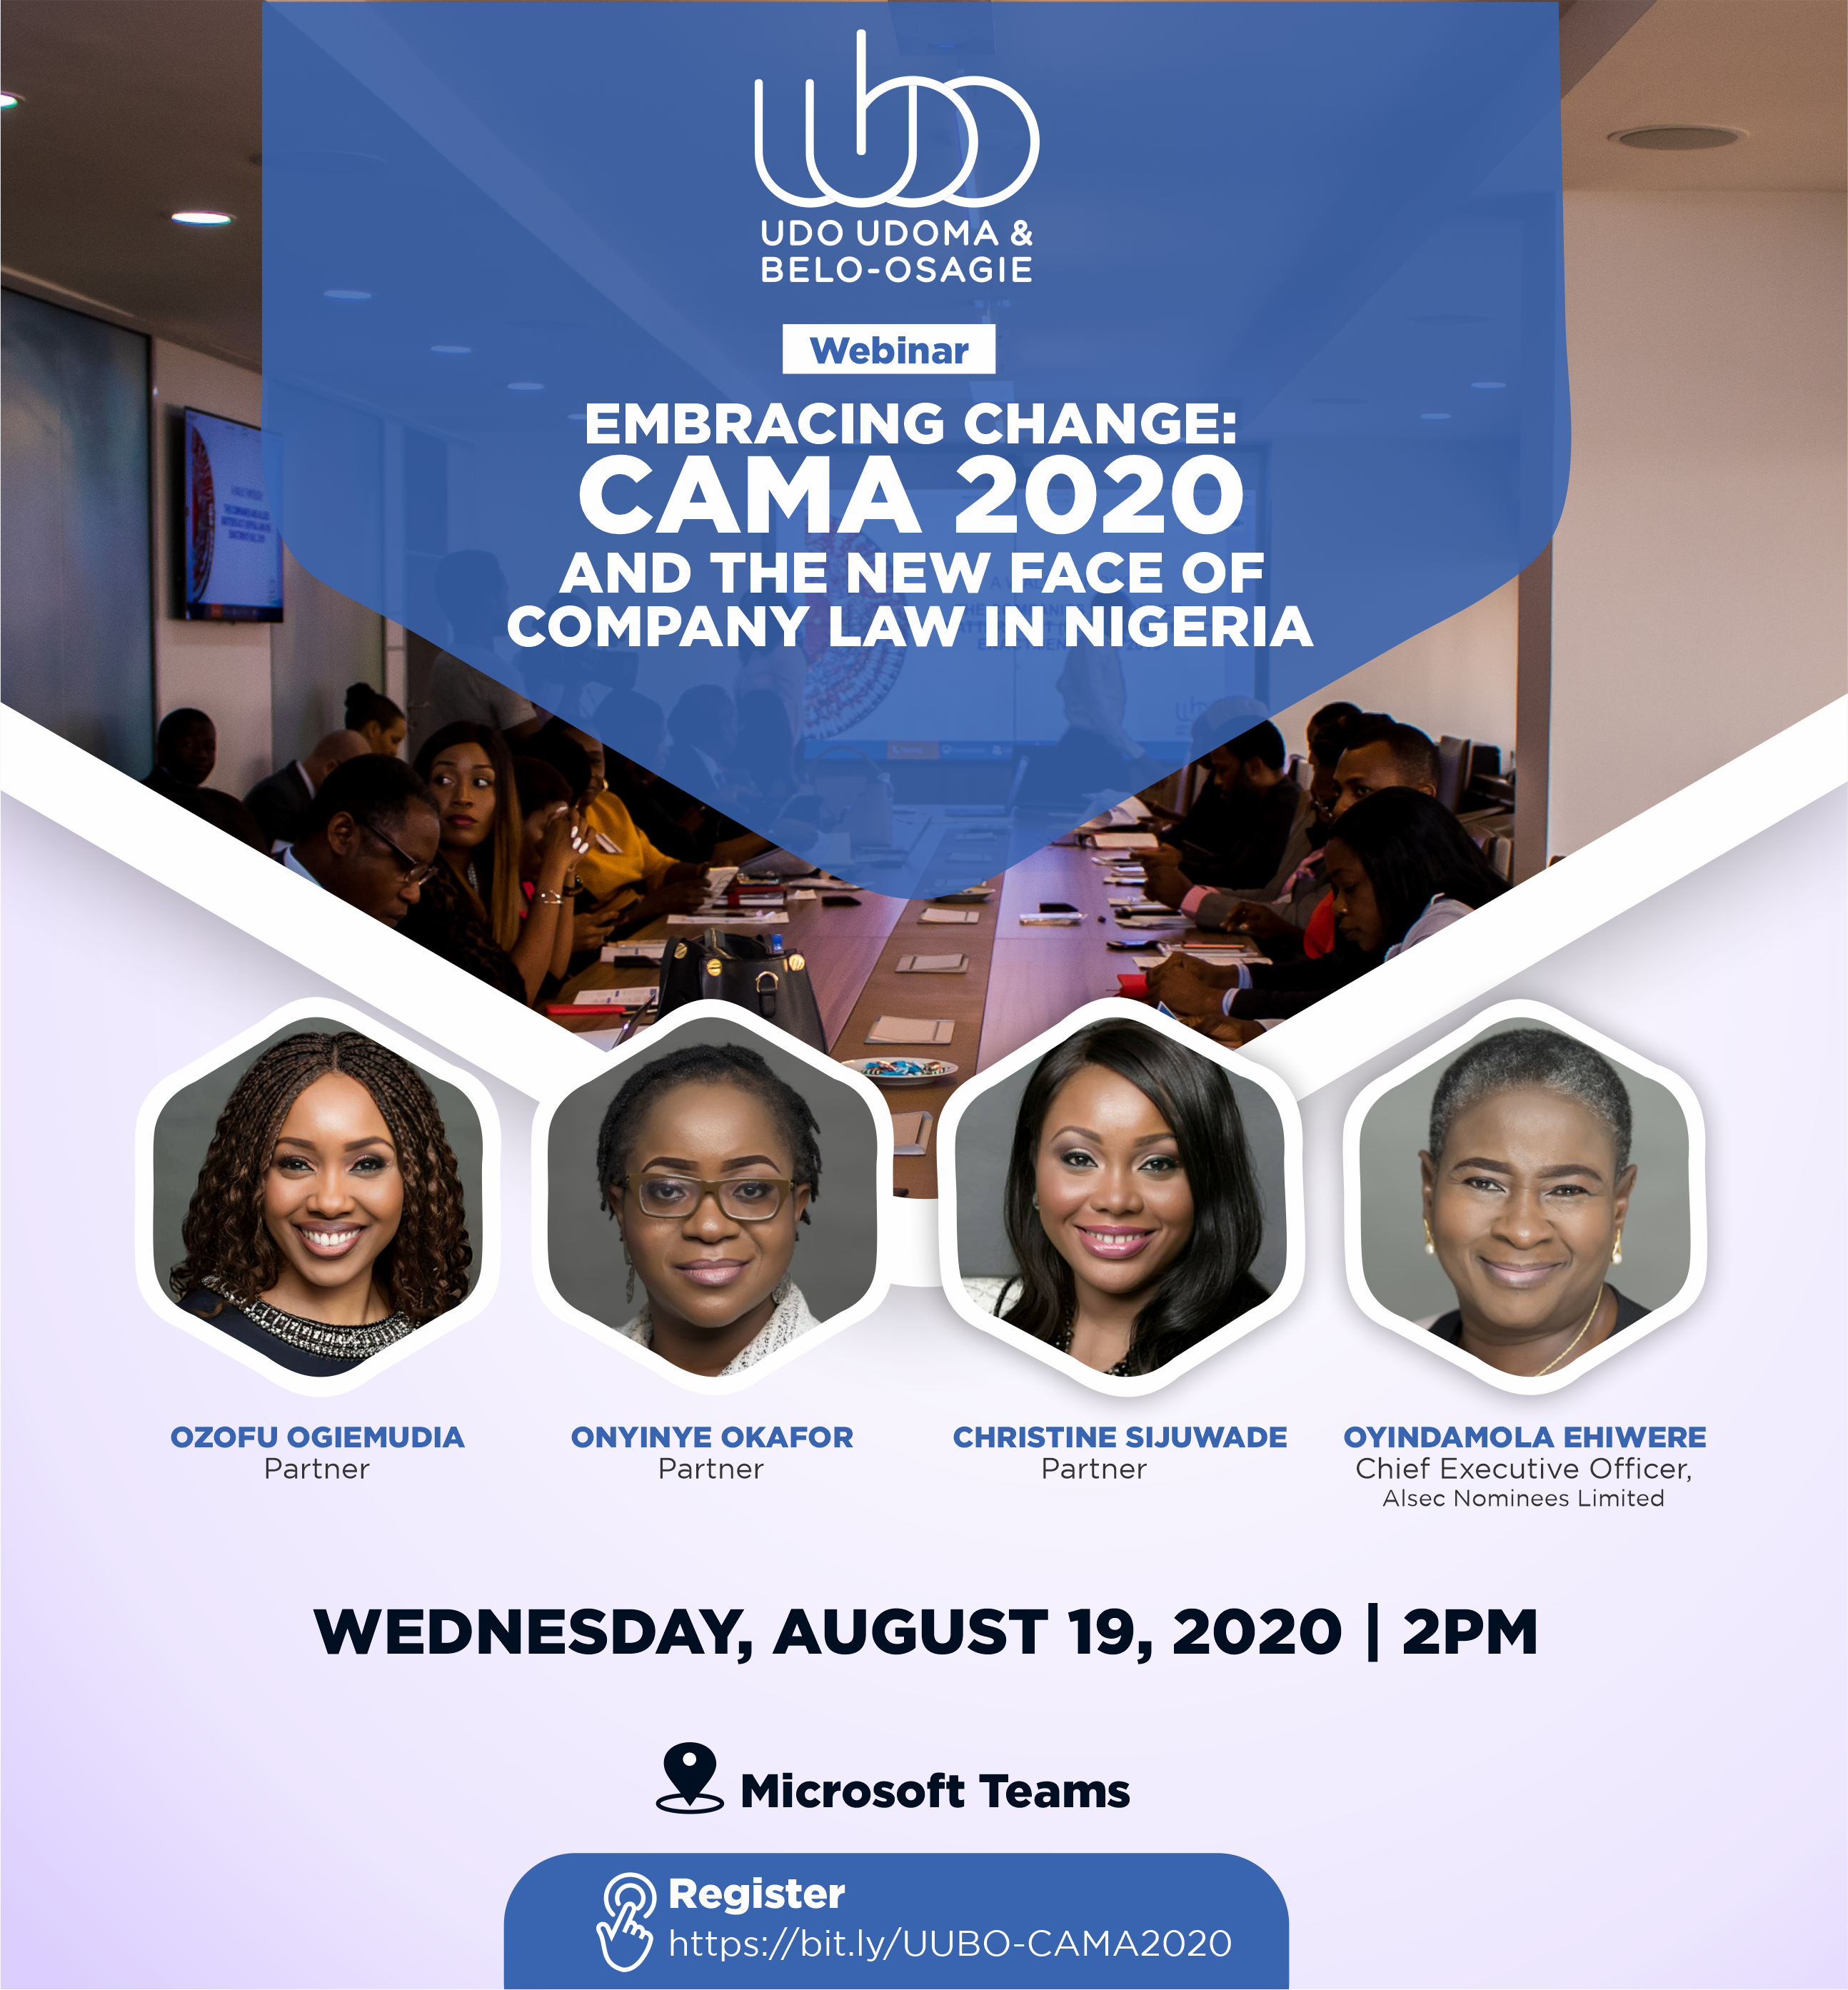 WEBINAR INVITATION - EMBRACING CHANGE: CAMA 2020 AND THE NEW FACE OF COMPANY LAW IN NIGERIA